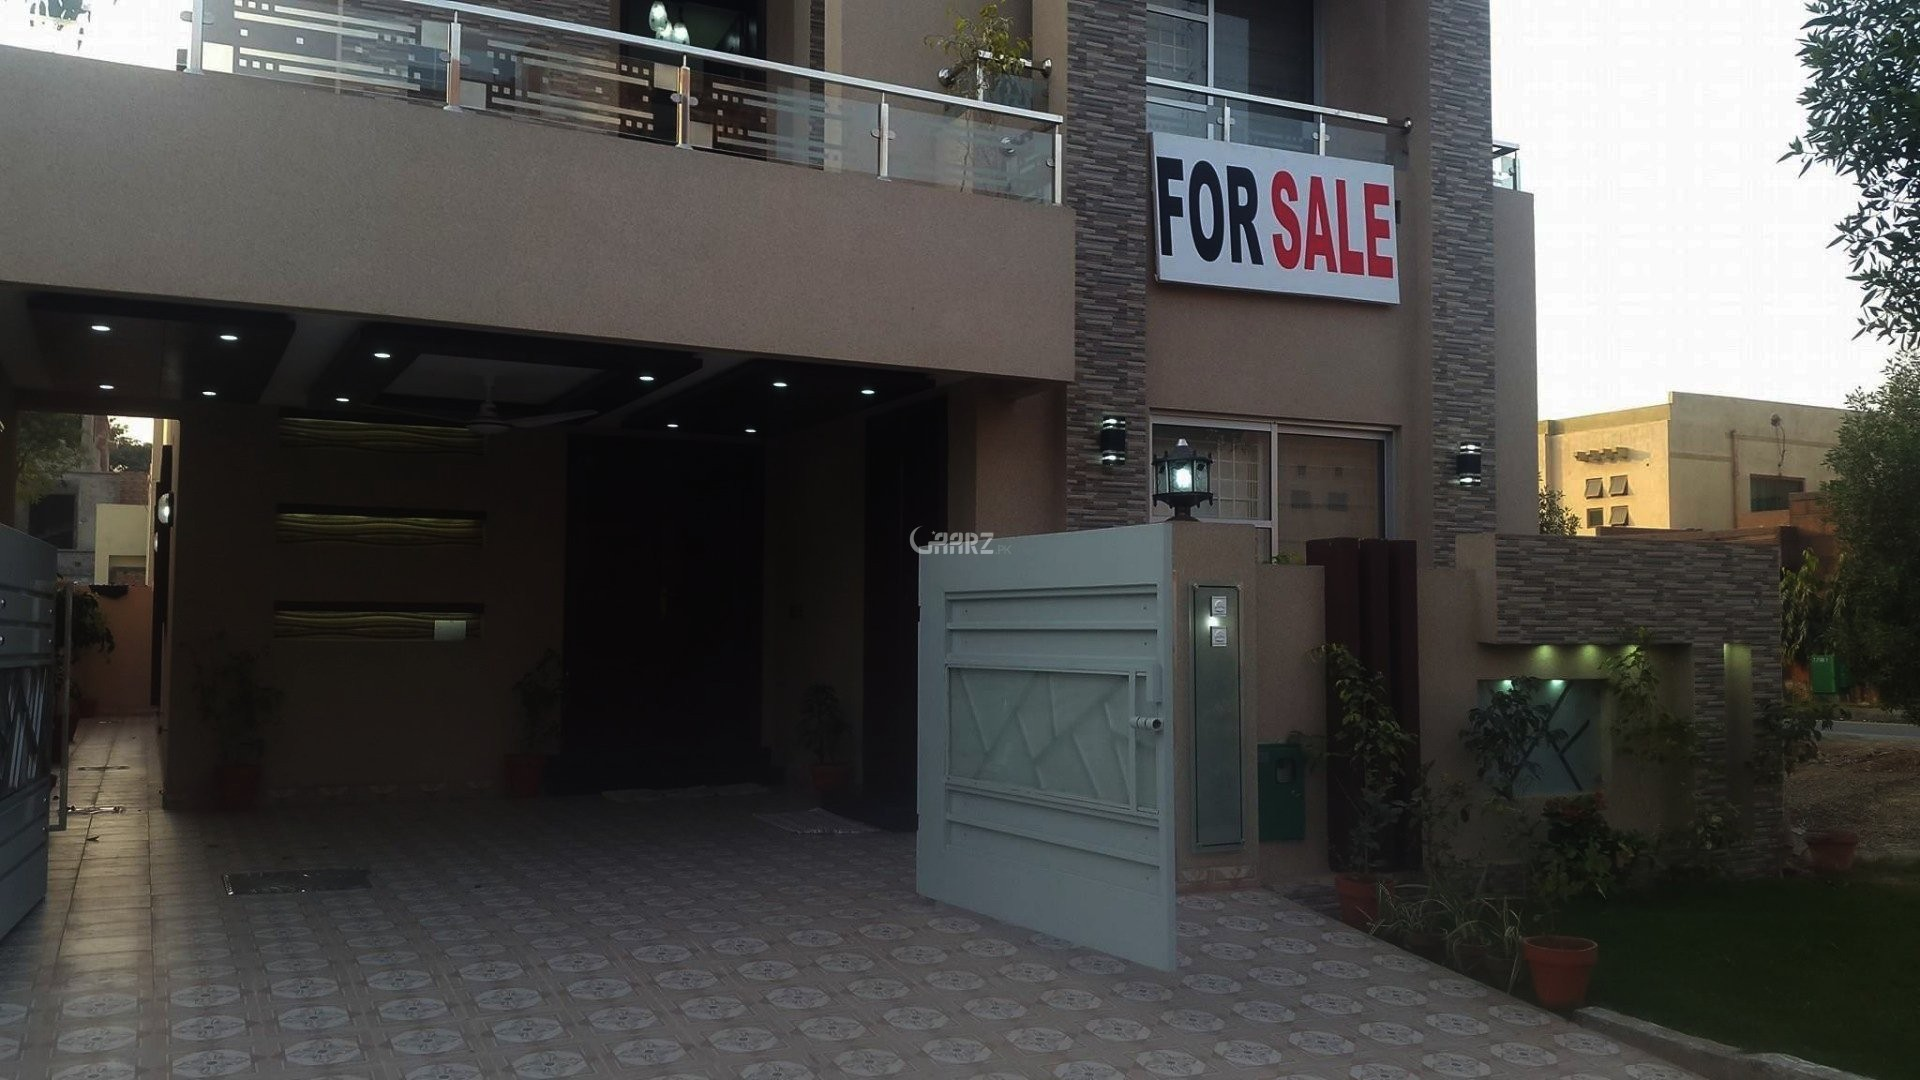 10 Marla House For Sale In Eden City, Lahore